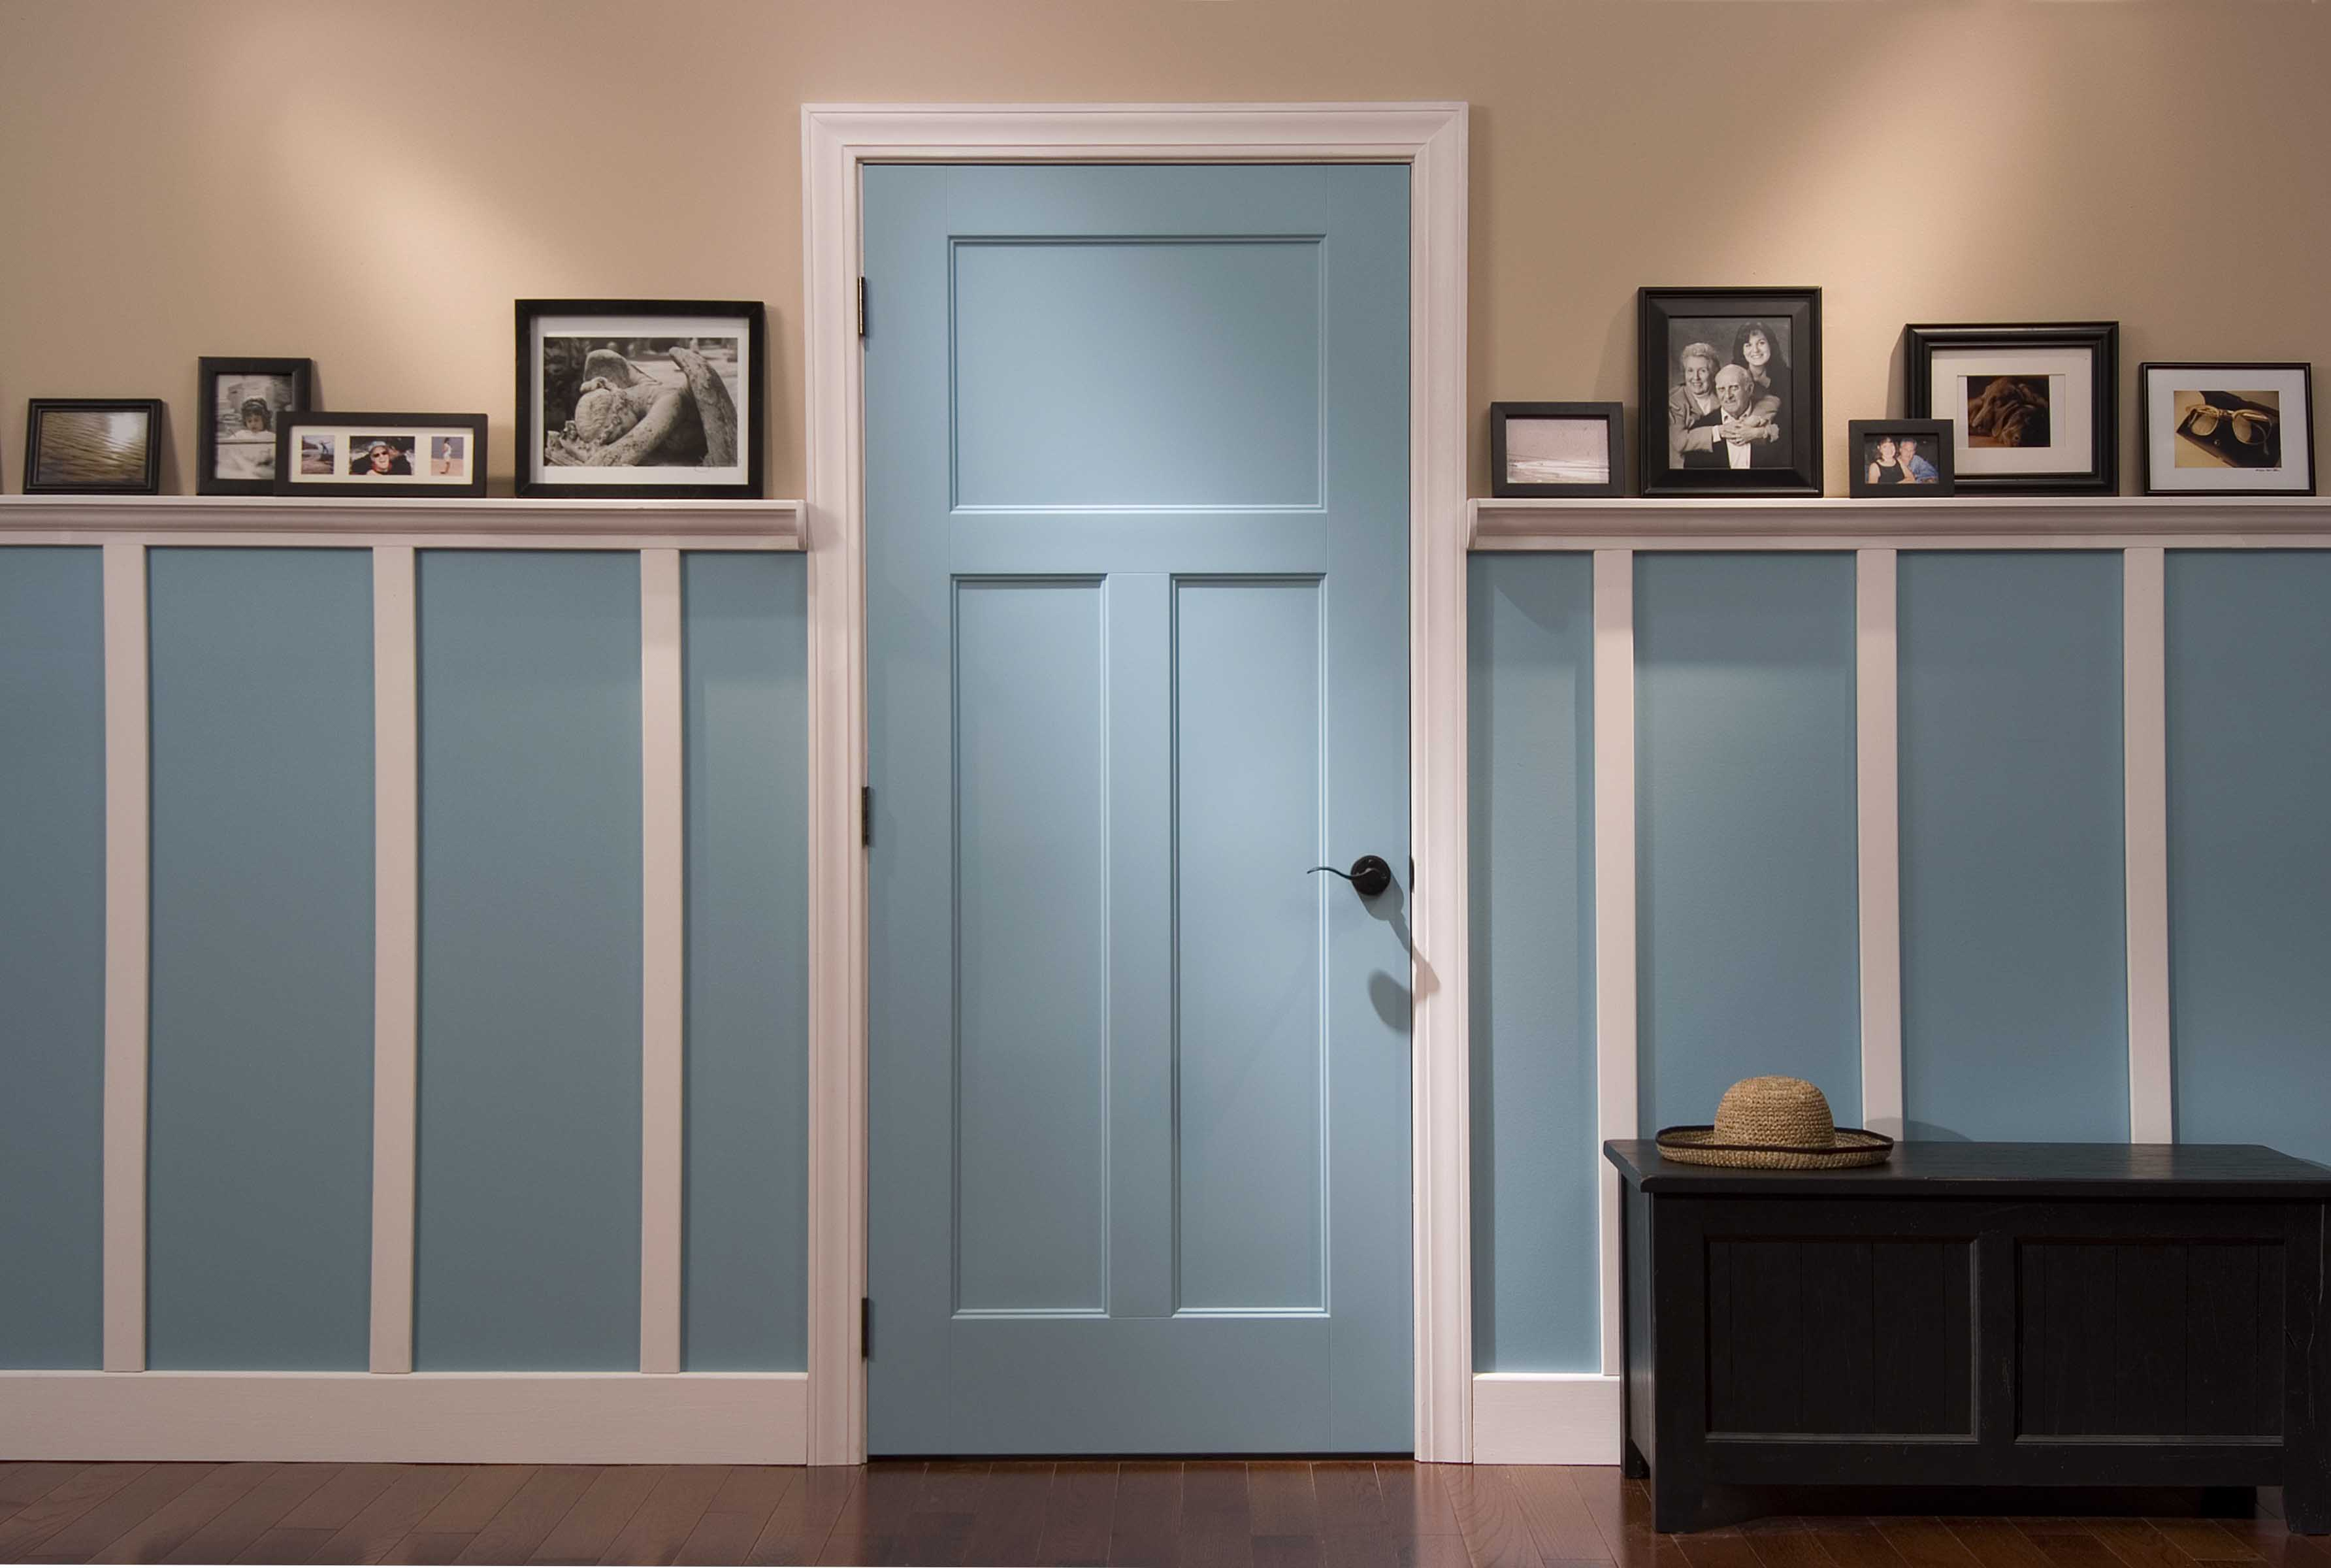 Cmi Introduces First Flat Panel Molded Interior Door At Ibs